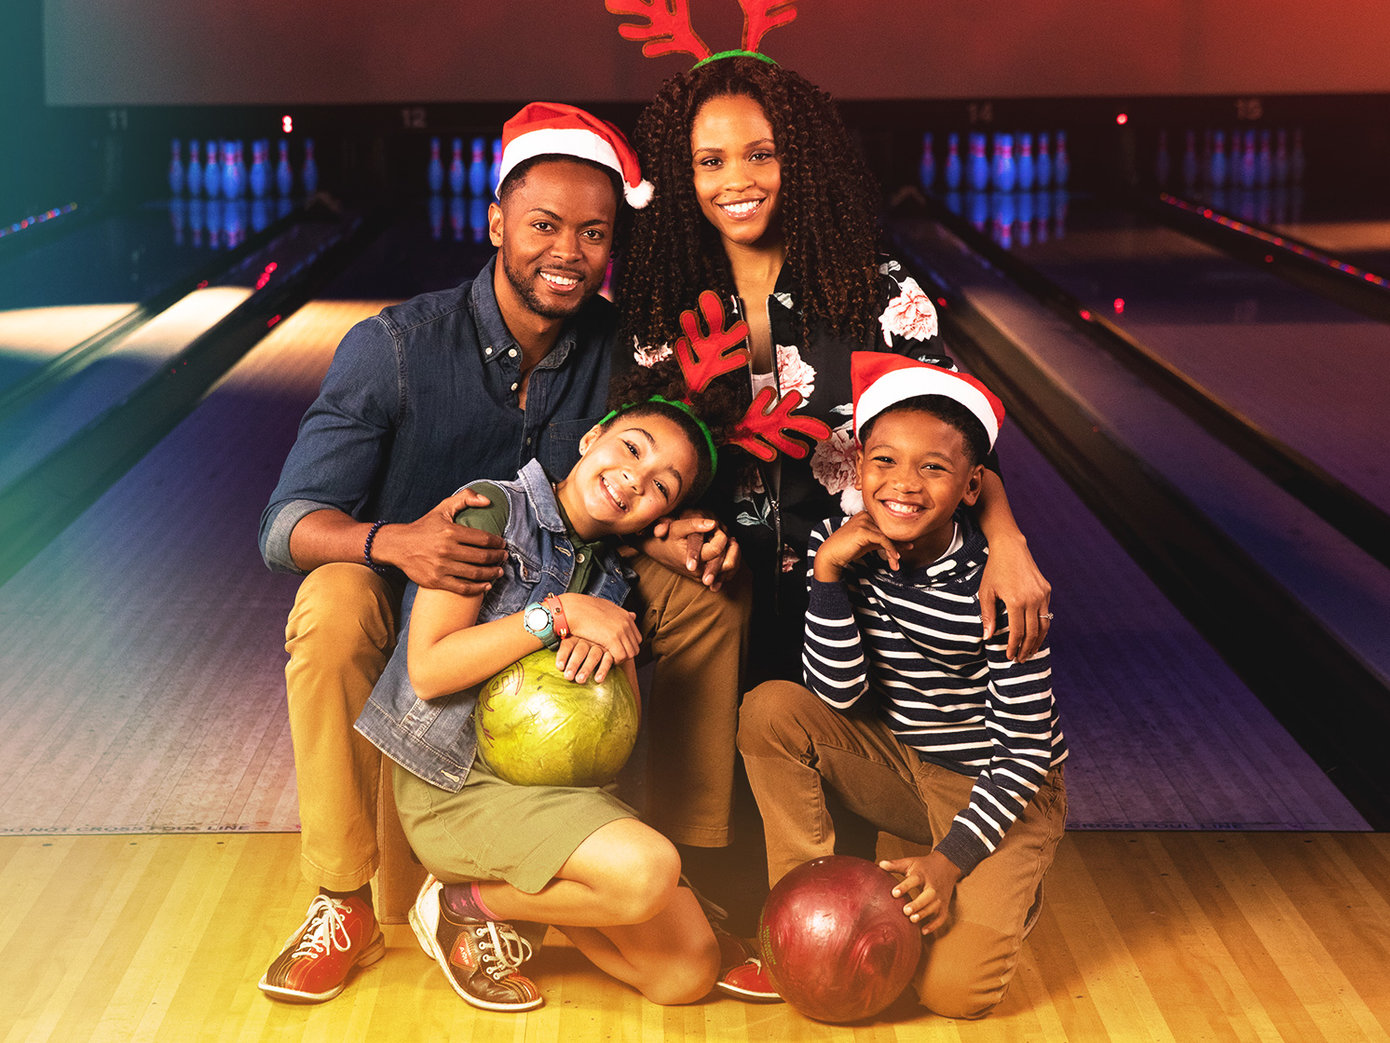 Family holding bowling balls and smiling on the lanes while wearing festive Christmas hats